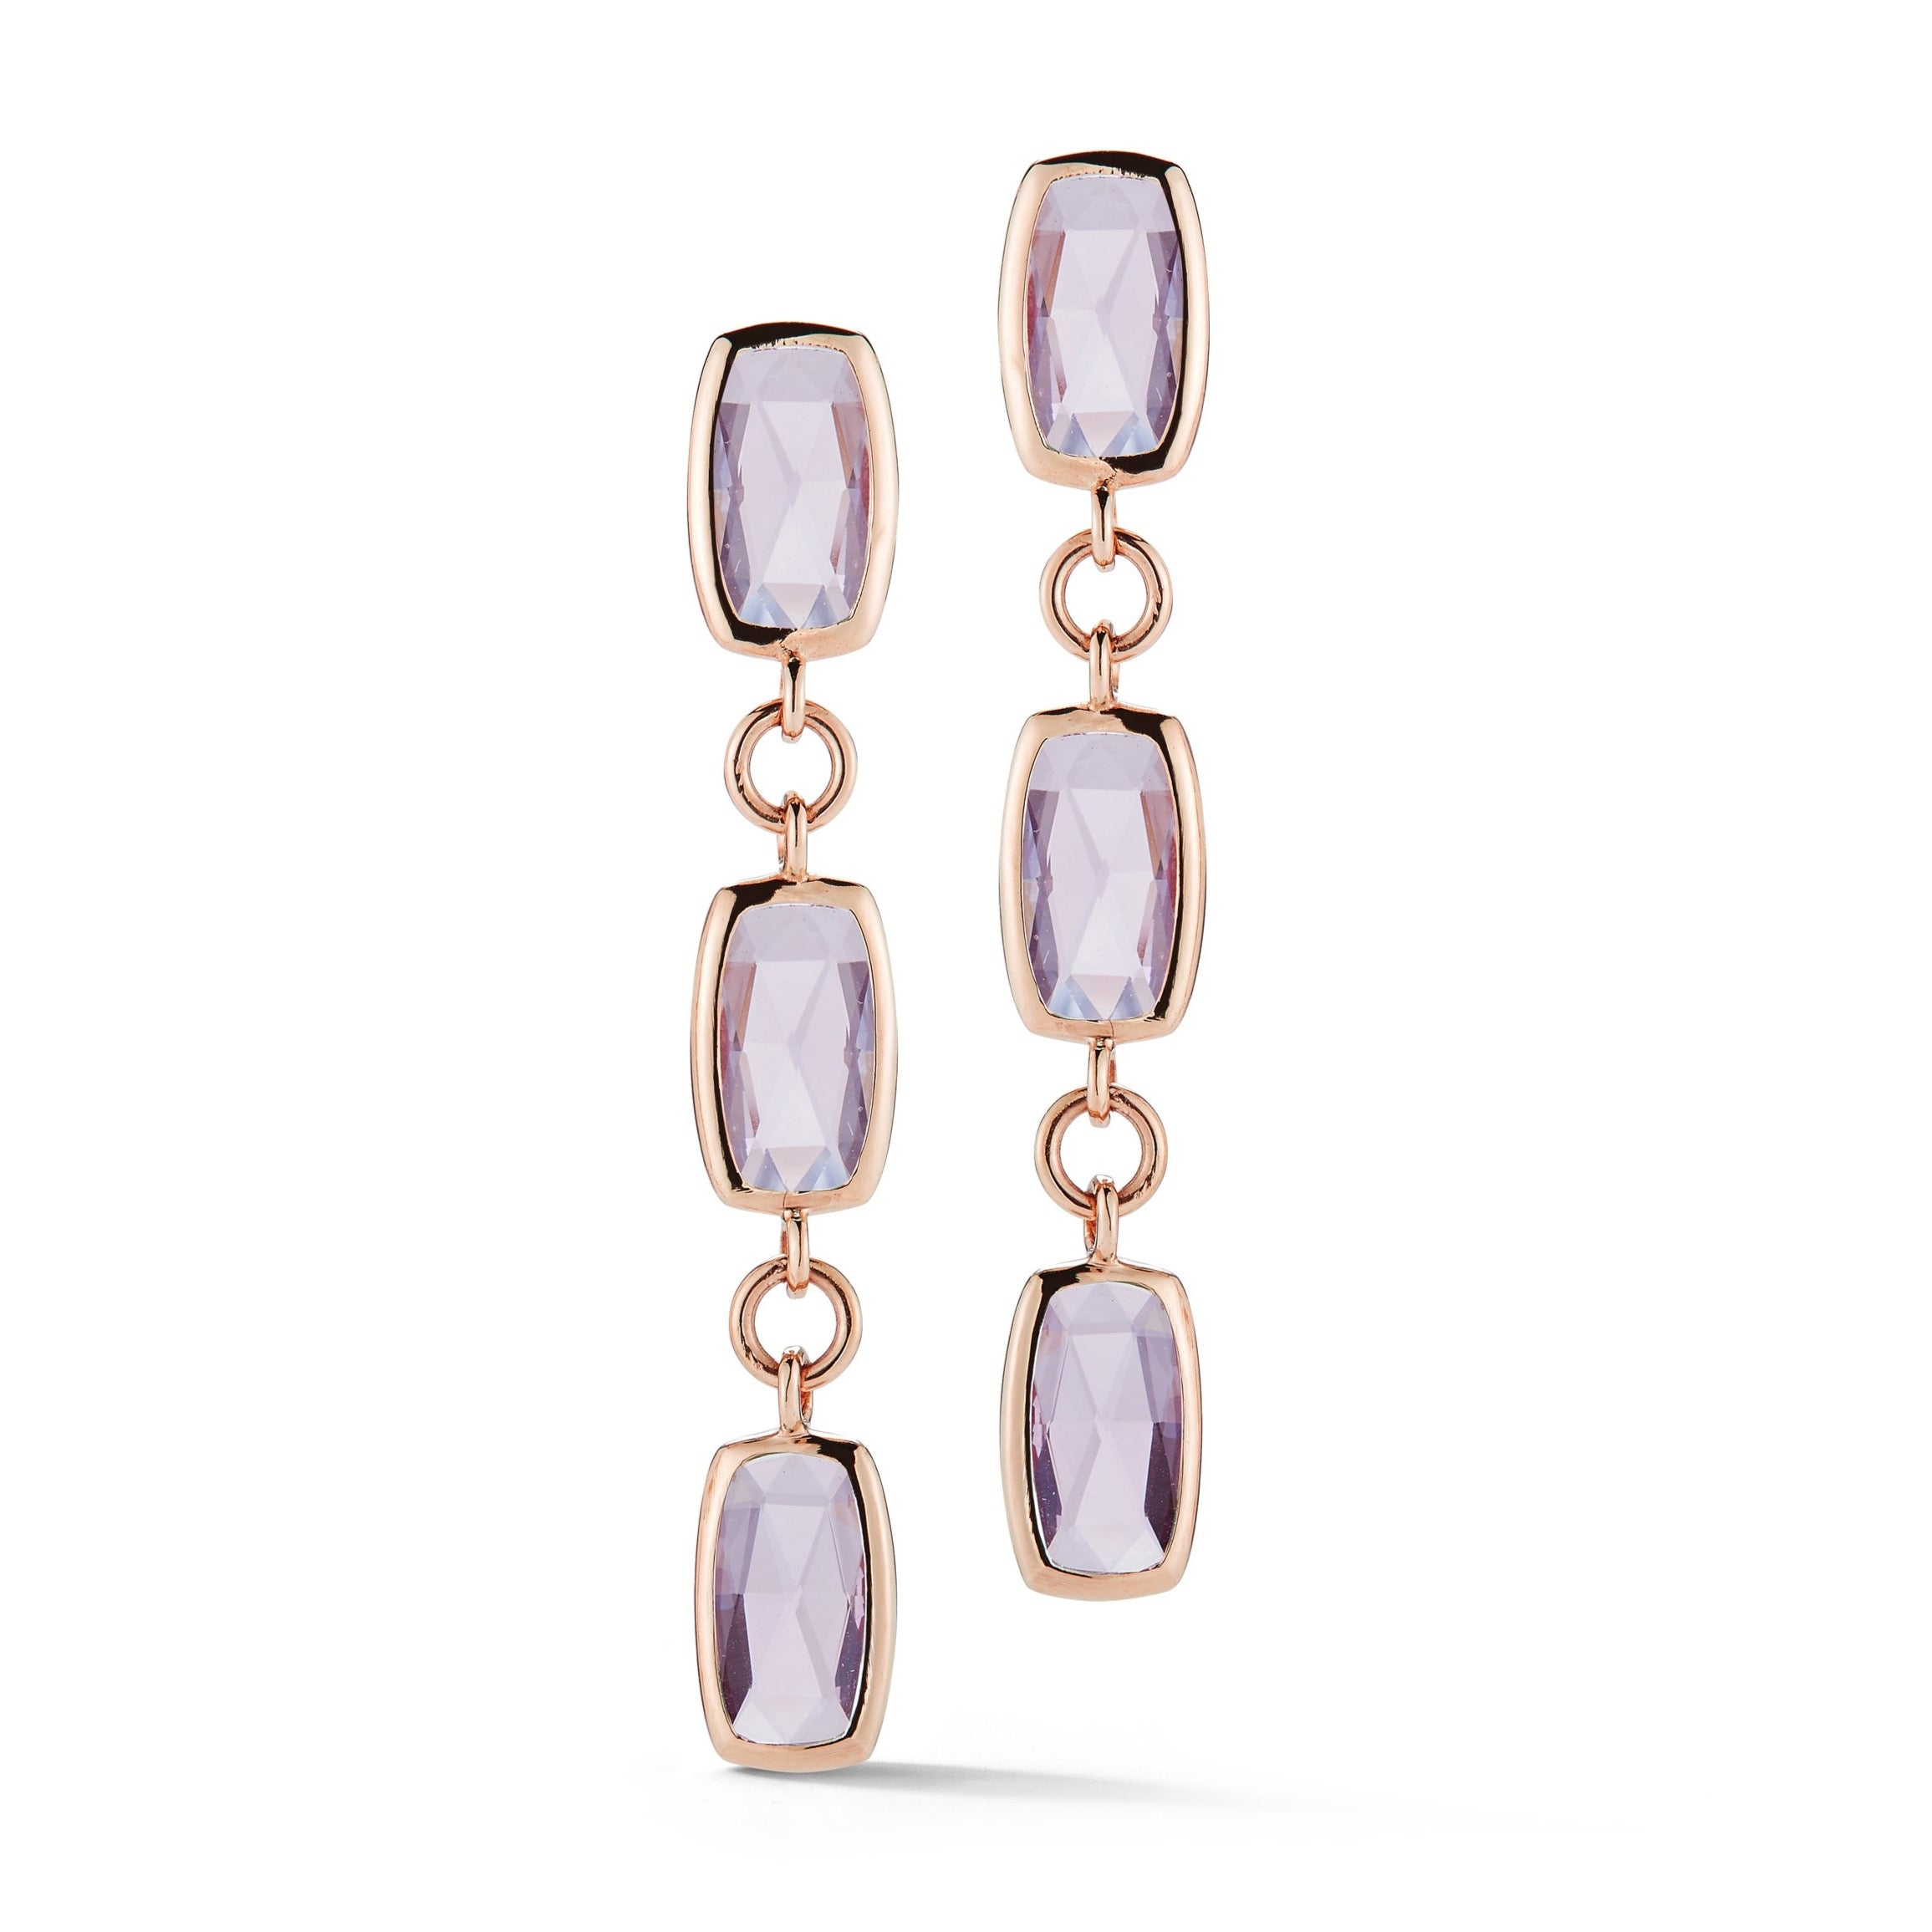 A-FURST-GAIA-DROP-EARRINGS-ROSE-DE-FRANCE-ROSE-GOLD-O1703RRF